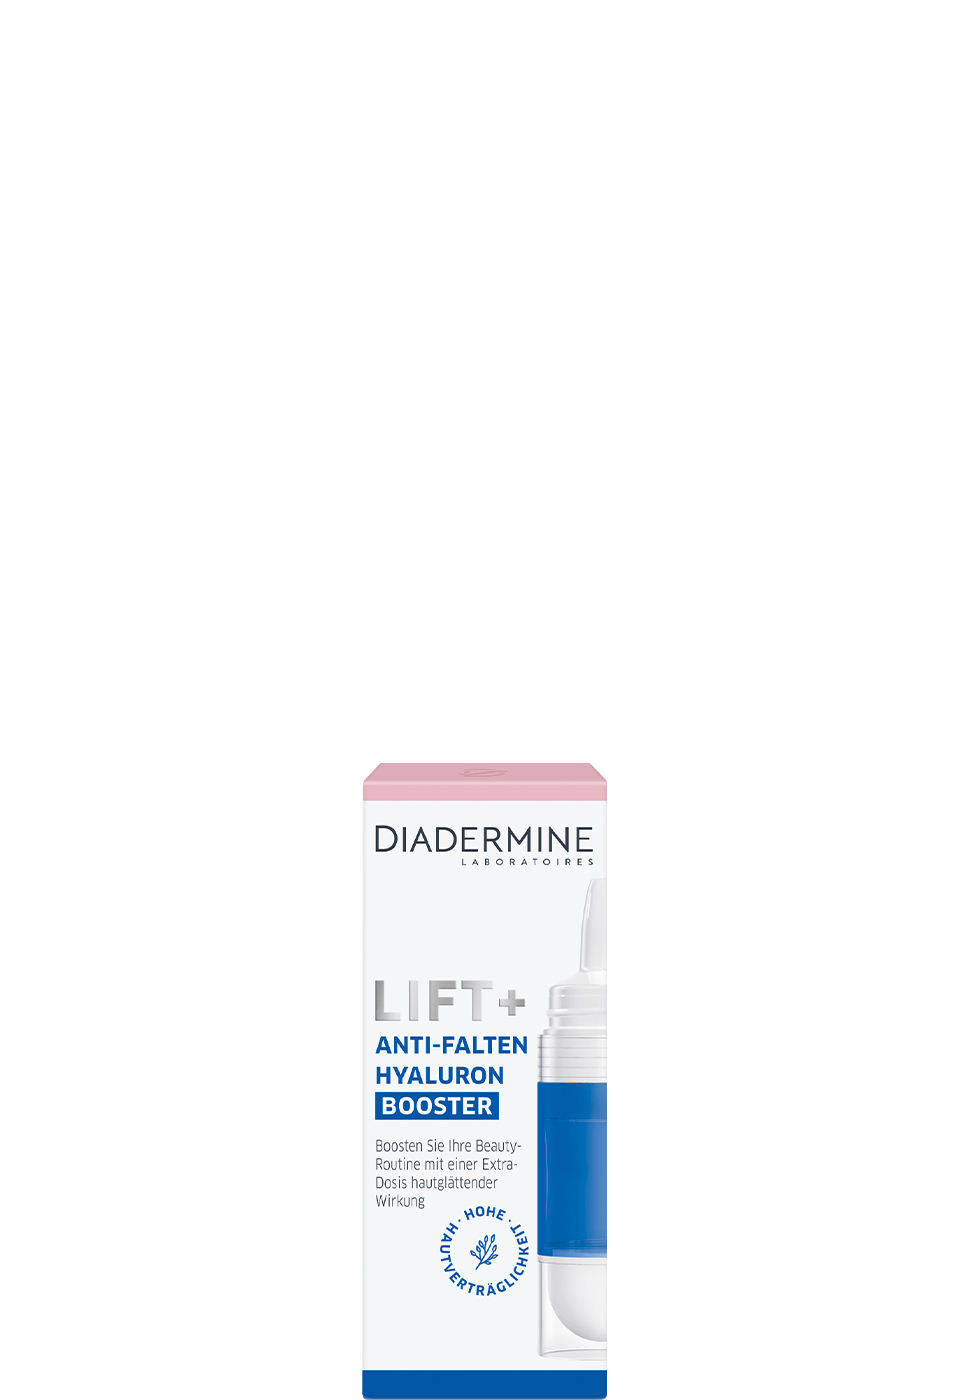 diadermine_de_lift_plus_anti_falten_hyaluron_booster_970x1400